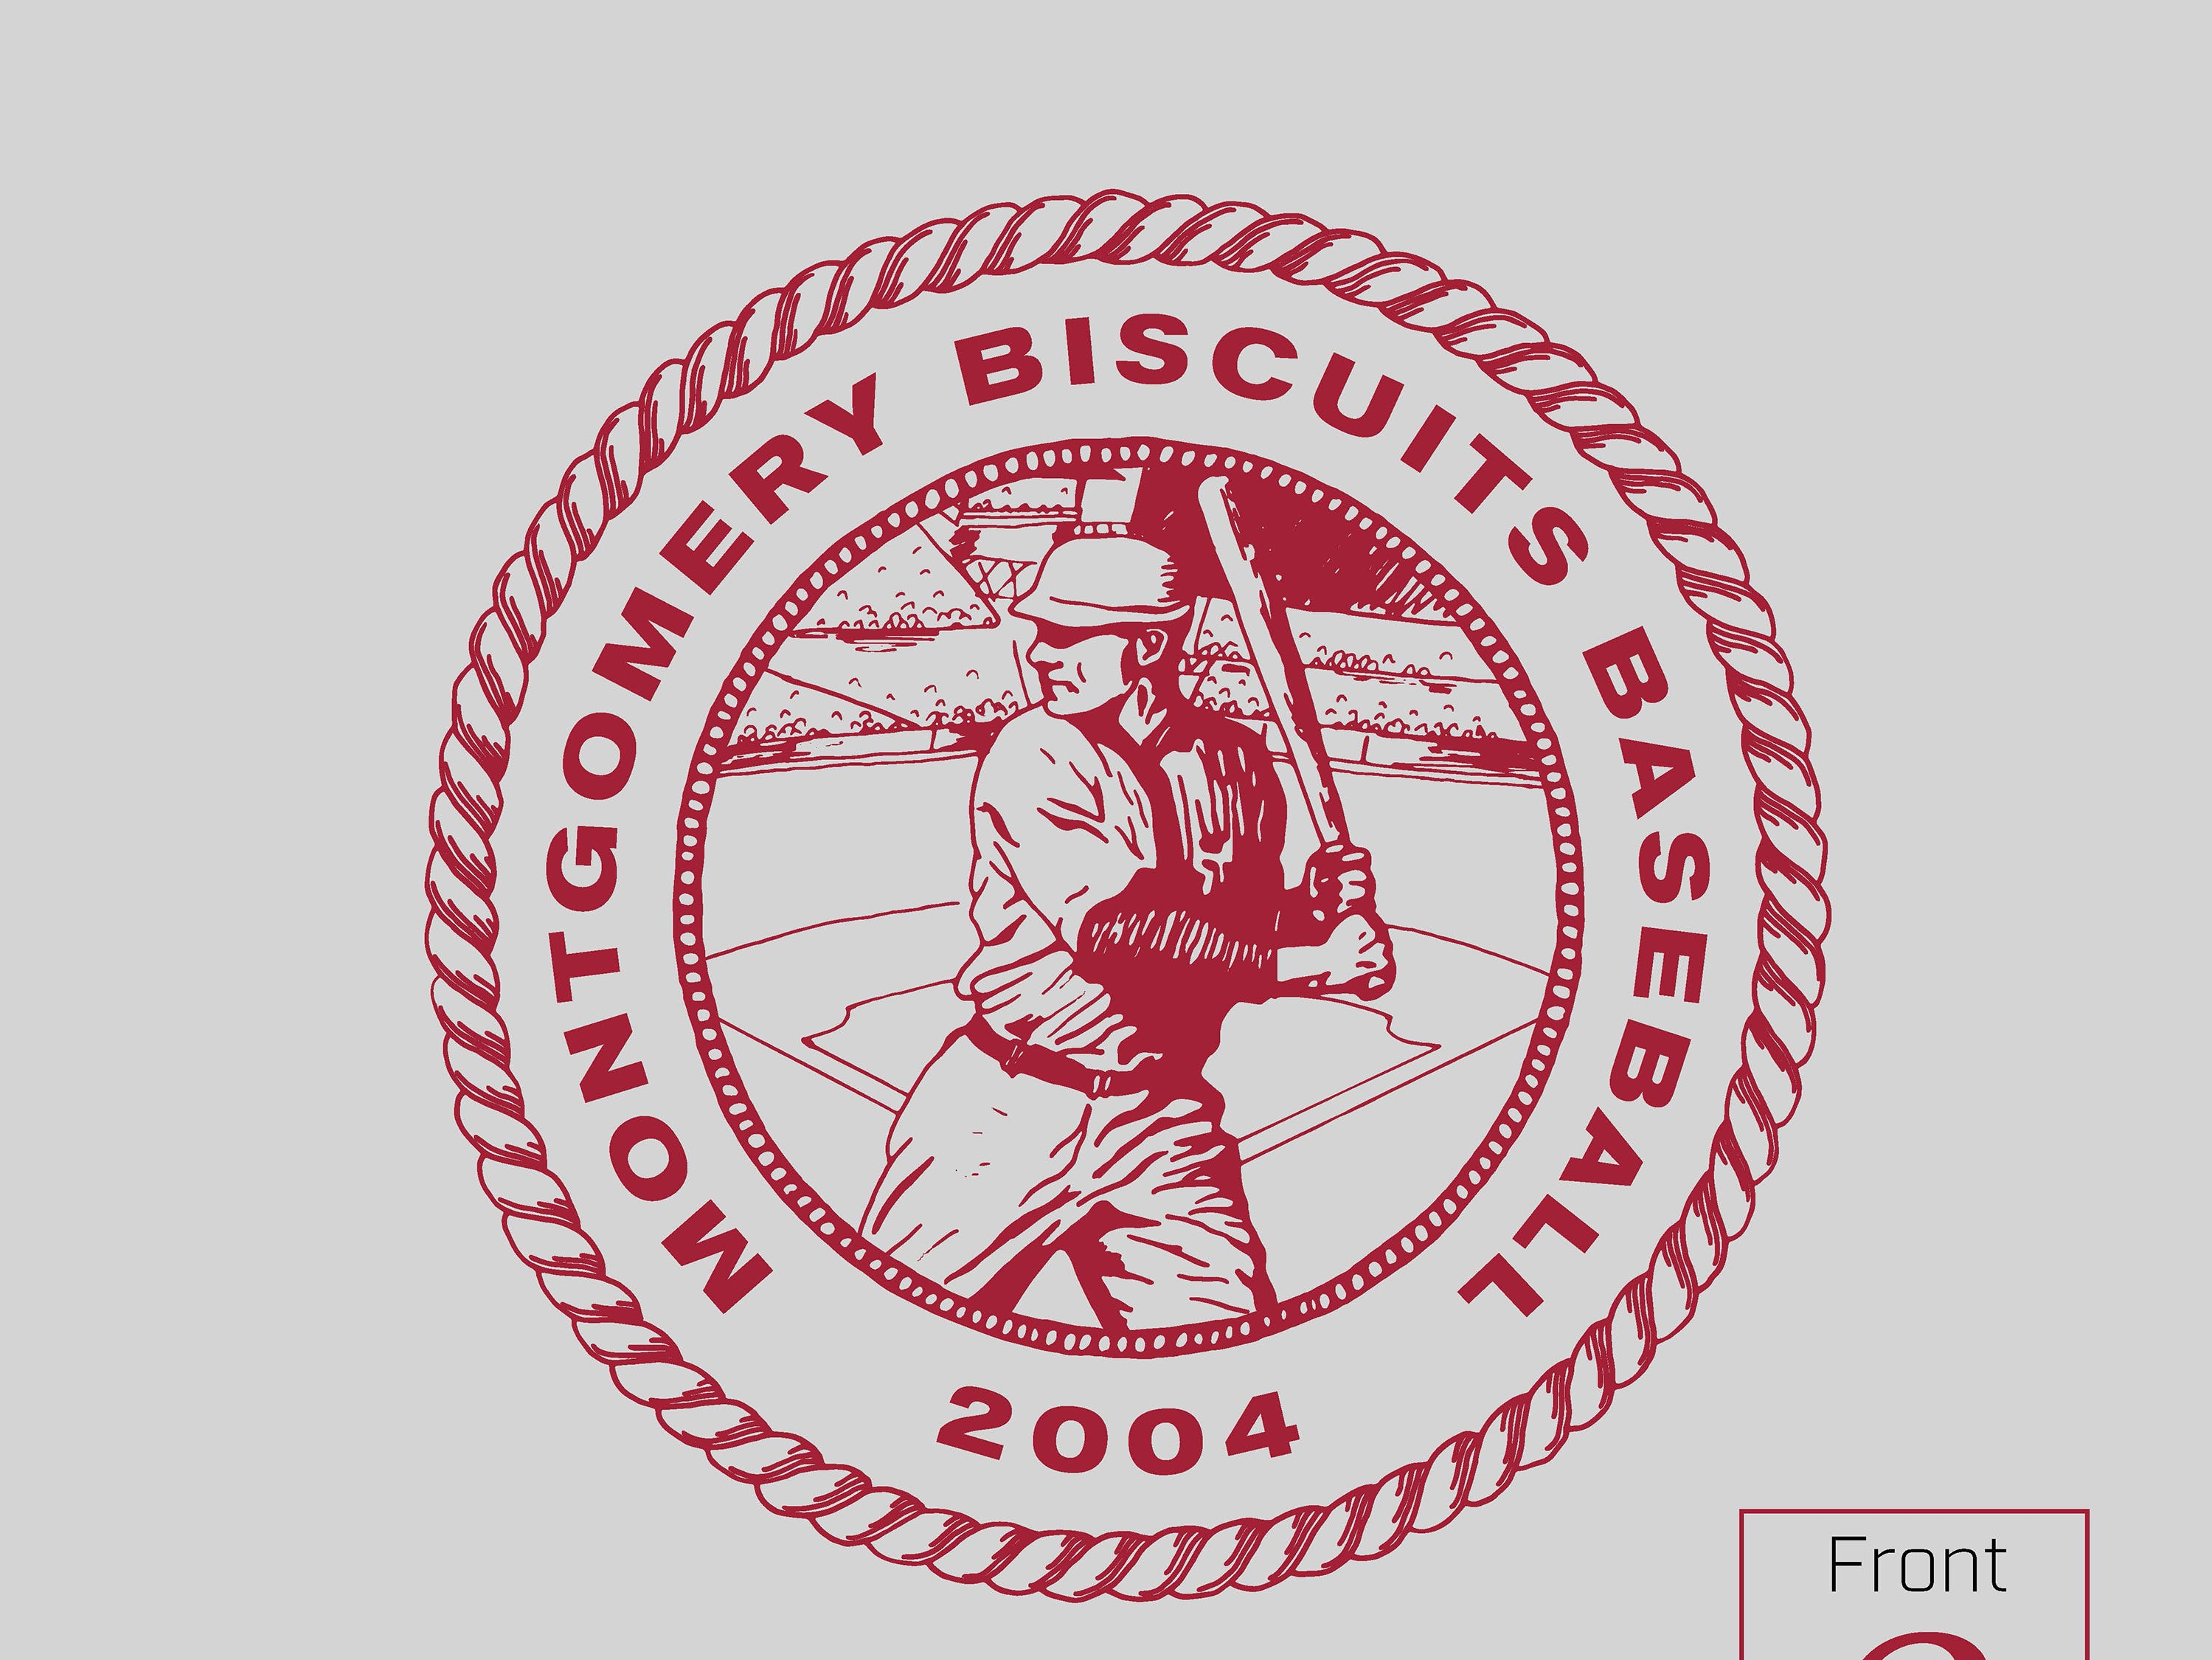 Montgomery Biscuits free t-shirt giveaway design for Tide Night on Thursday, July 18, 2019.